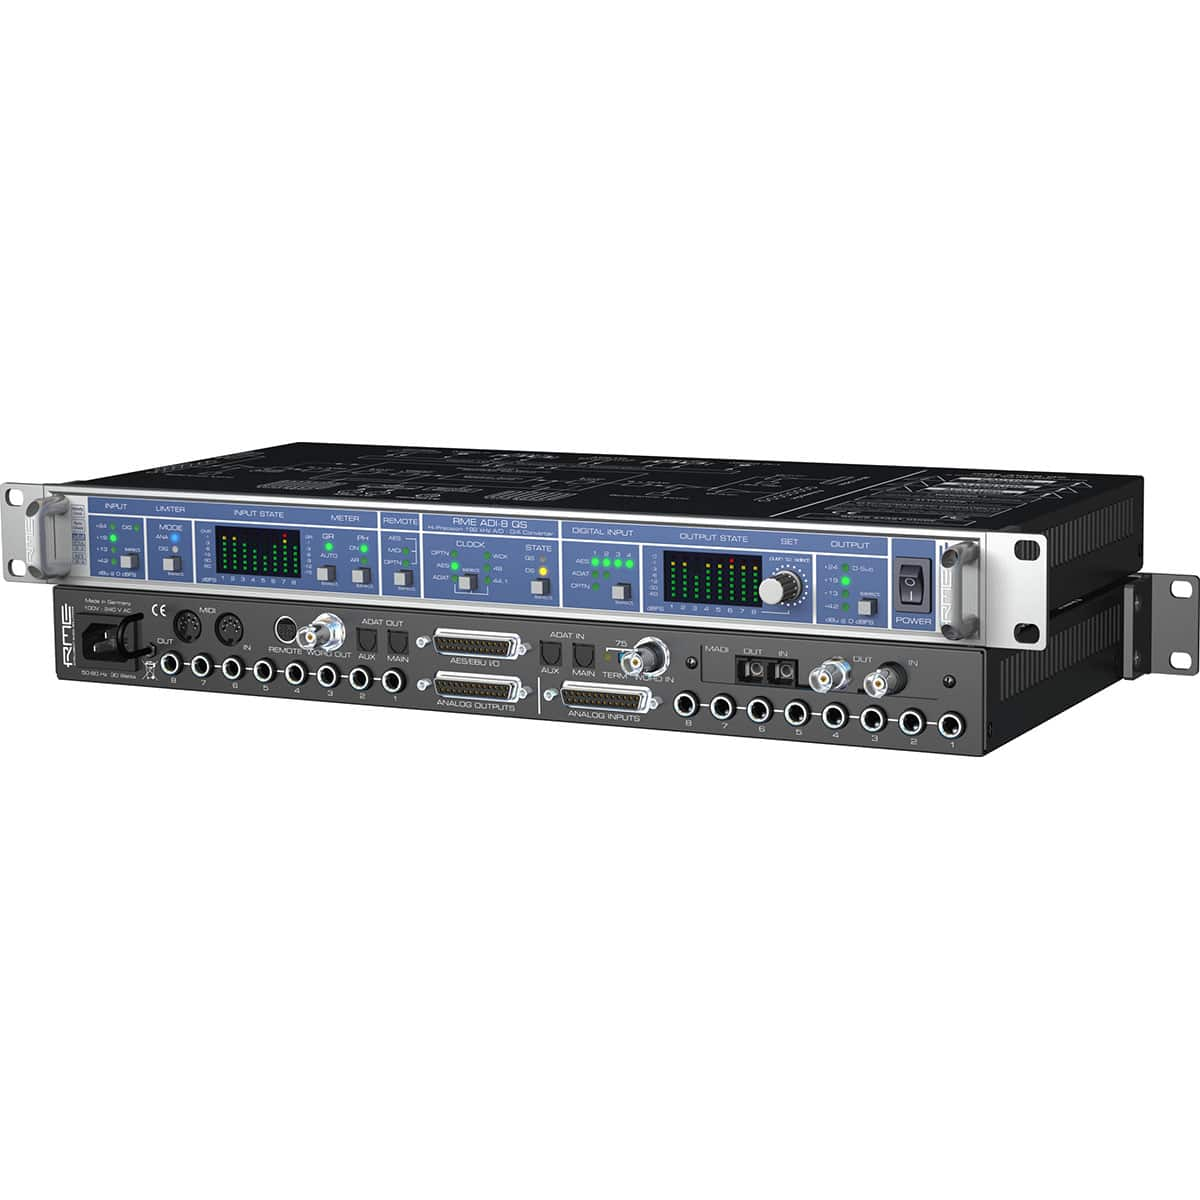 RME ADI 8 QS 06 Convertitori Audio, Pro Audio, Audio Digitale Convertitori e Schede Audio